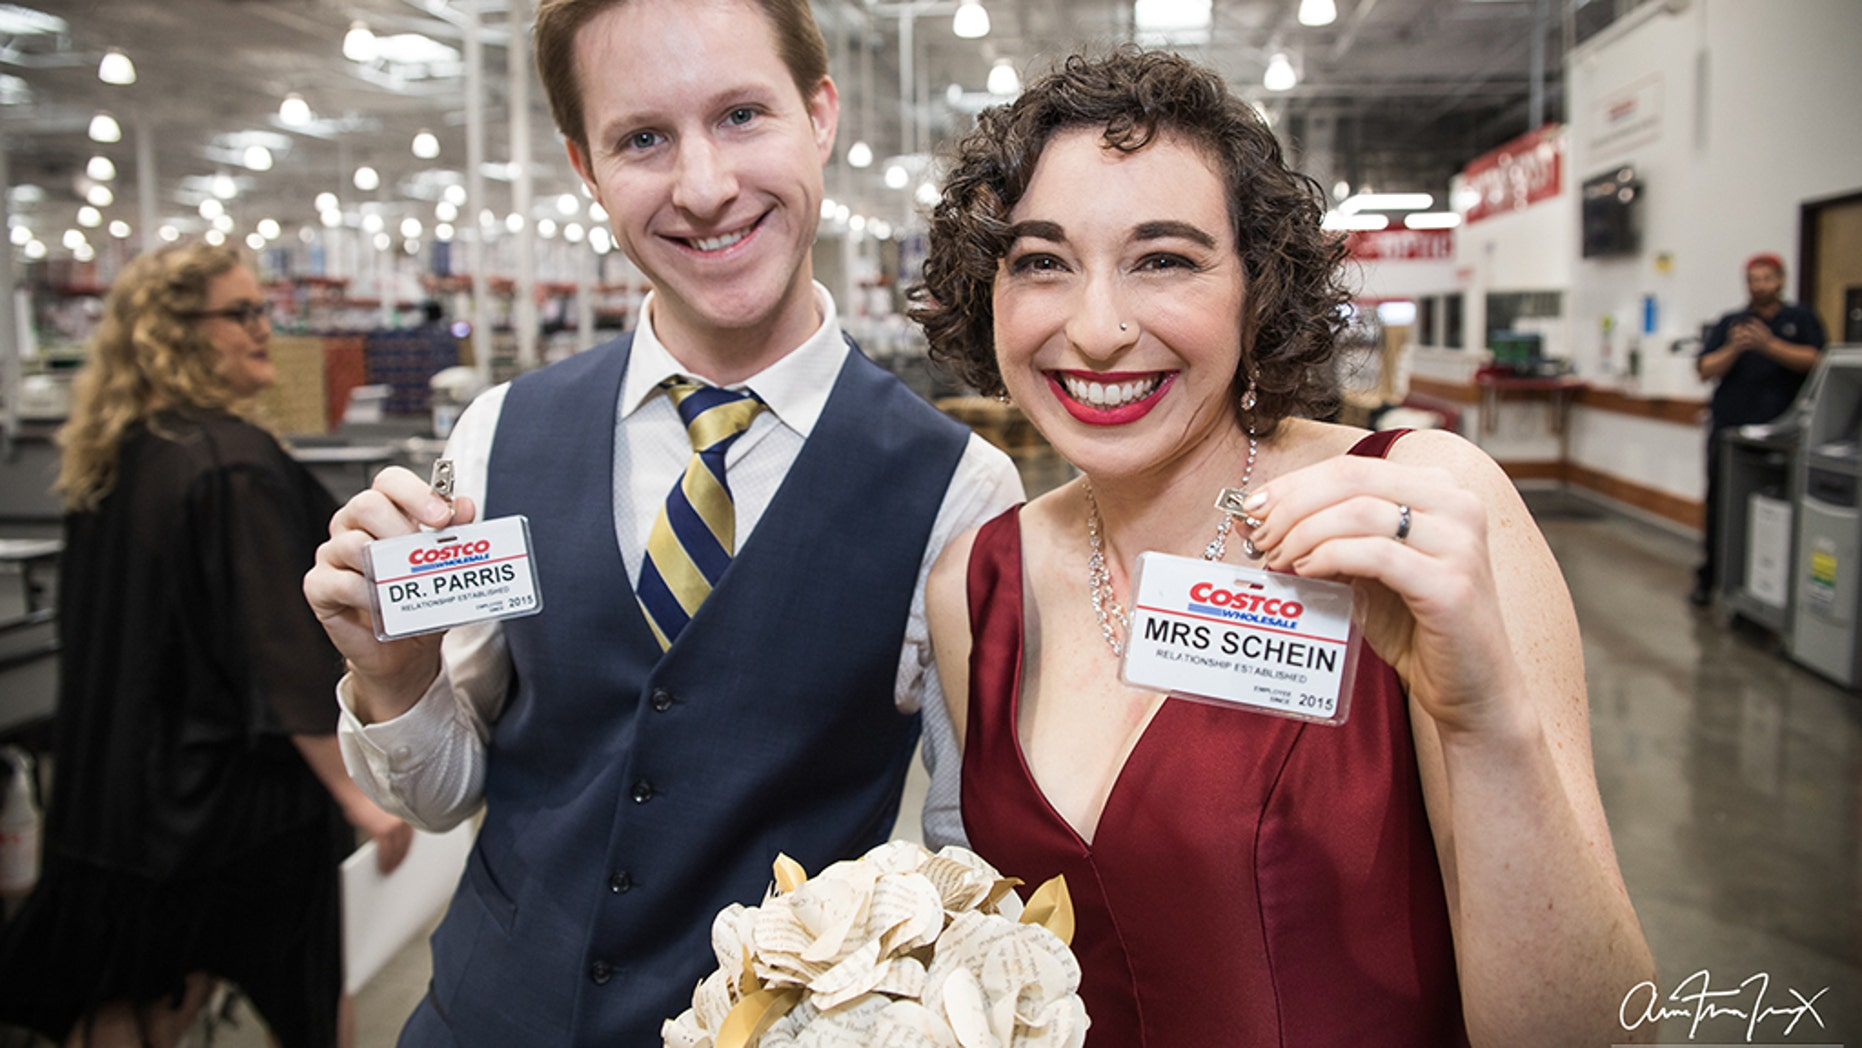 """On Nov. 29, Margot Schein and Julian Parris said """"I do"""" at a Costco in the Mission Valley neighborhood of San Diego."""